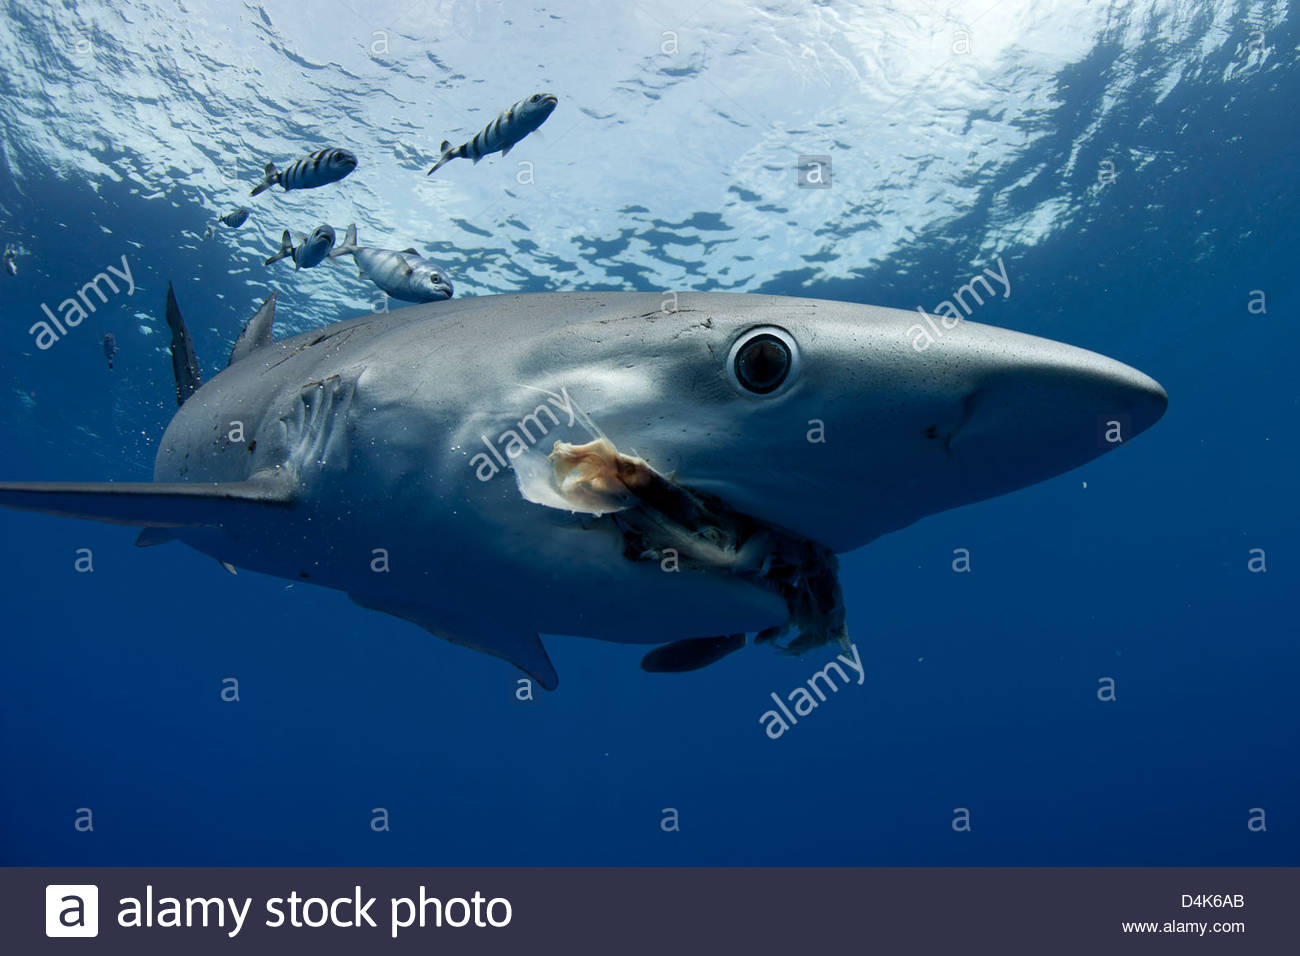 Shark and fish swimming underwater - Stock Image